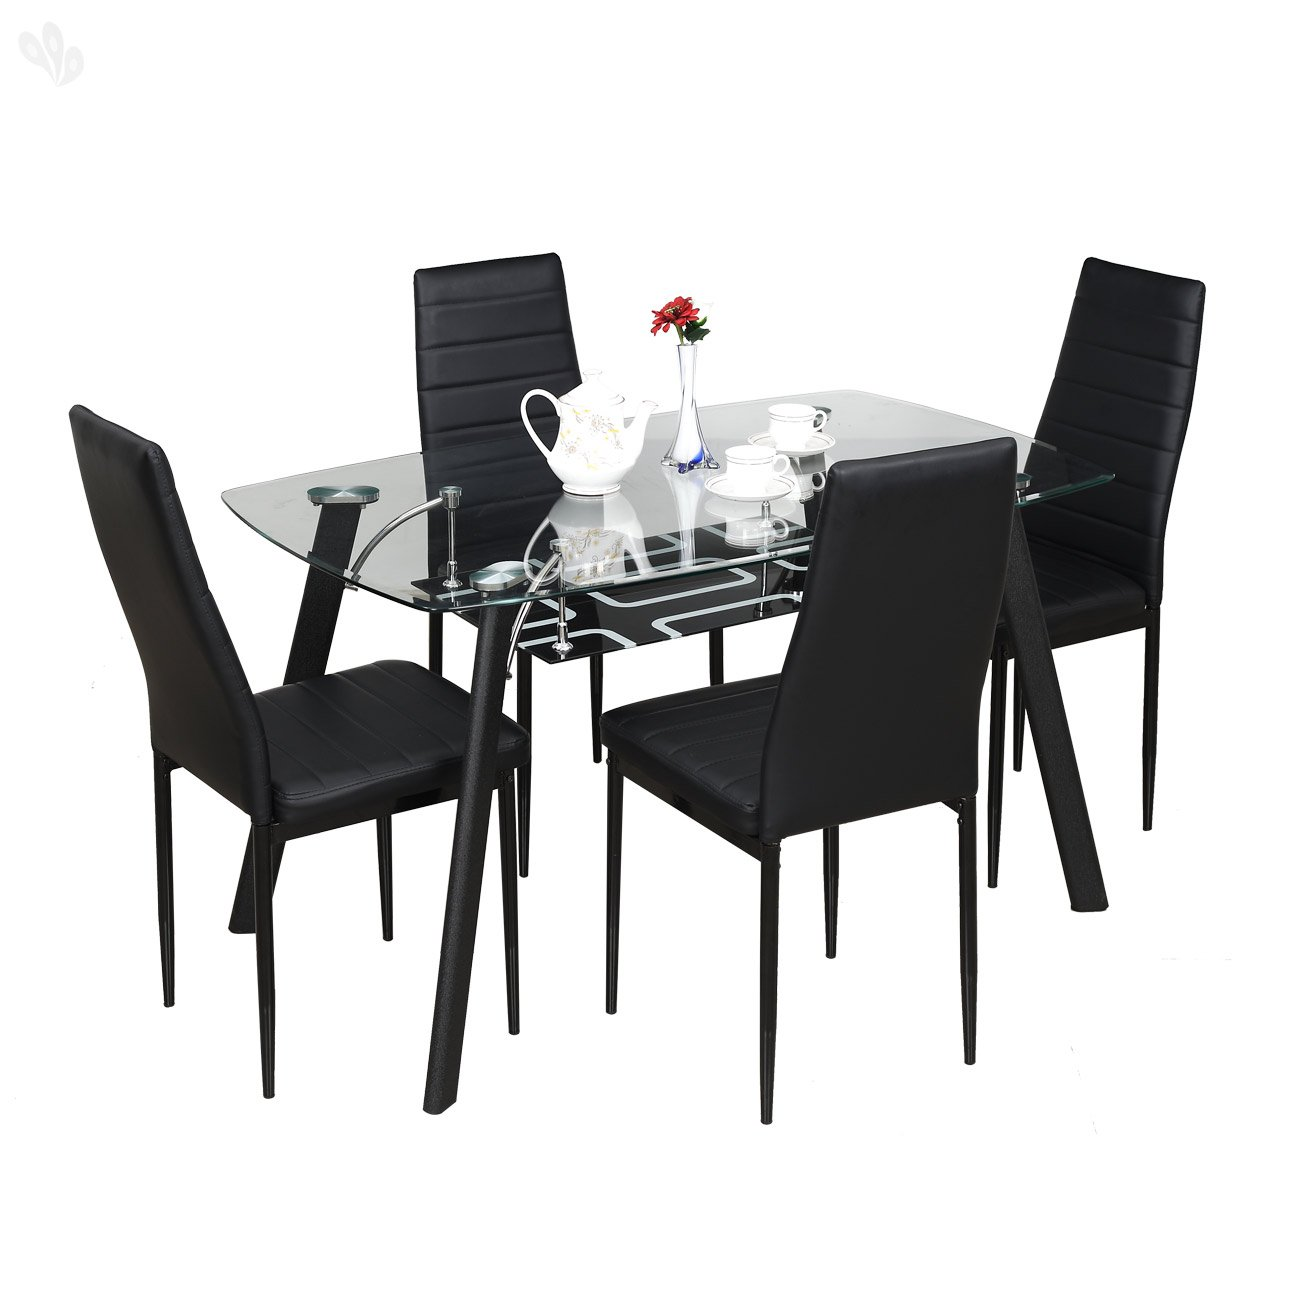 Royal oak milan four seater dining table set black for Dining table chairs